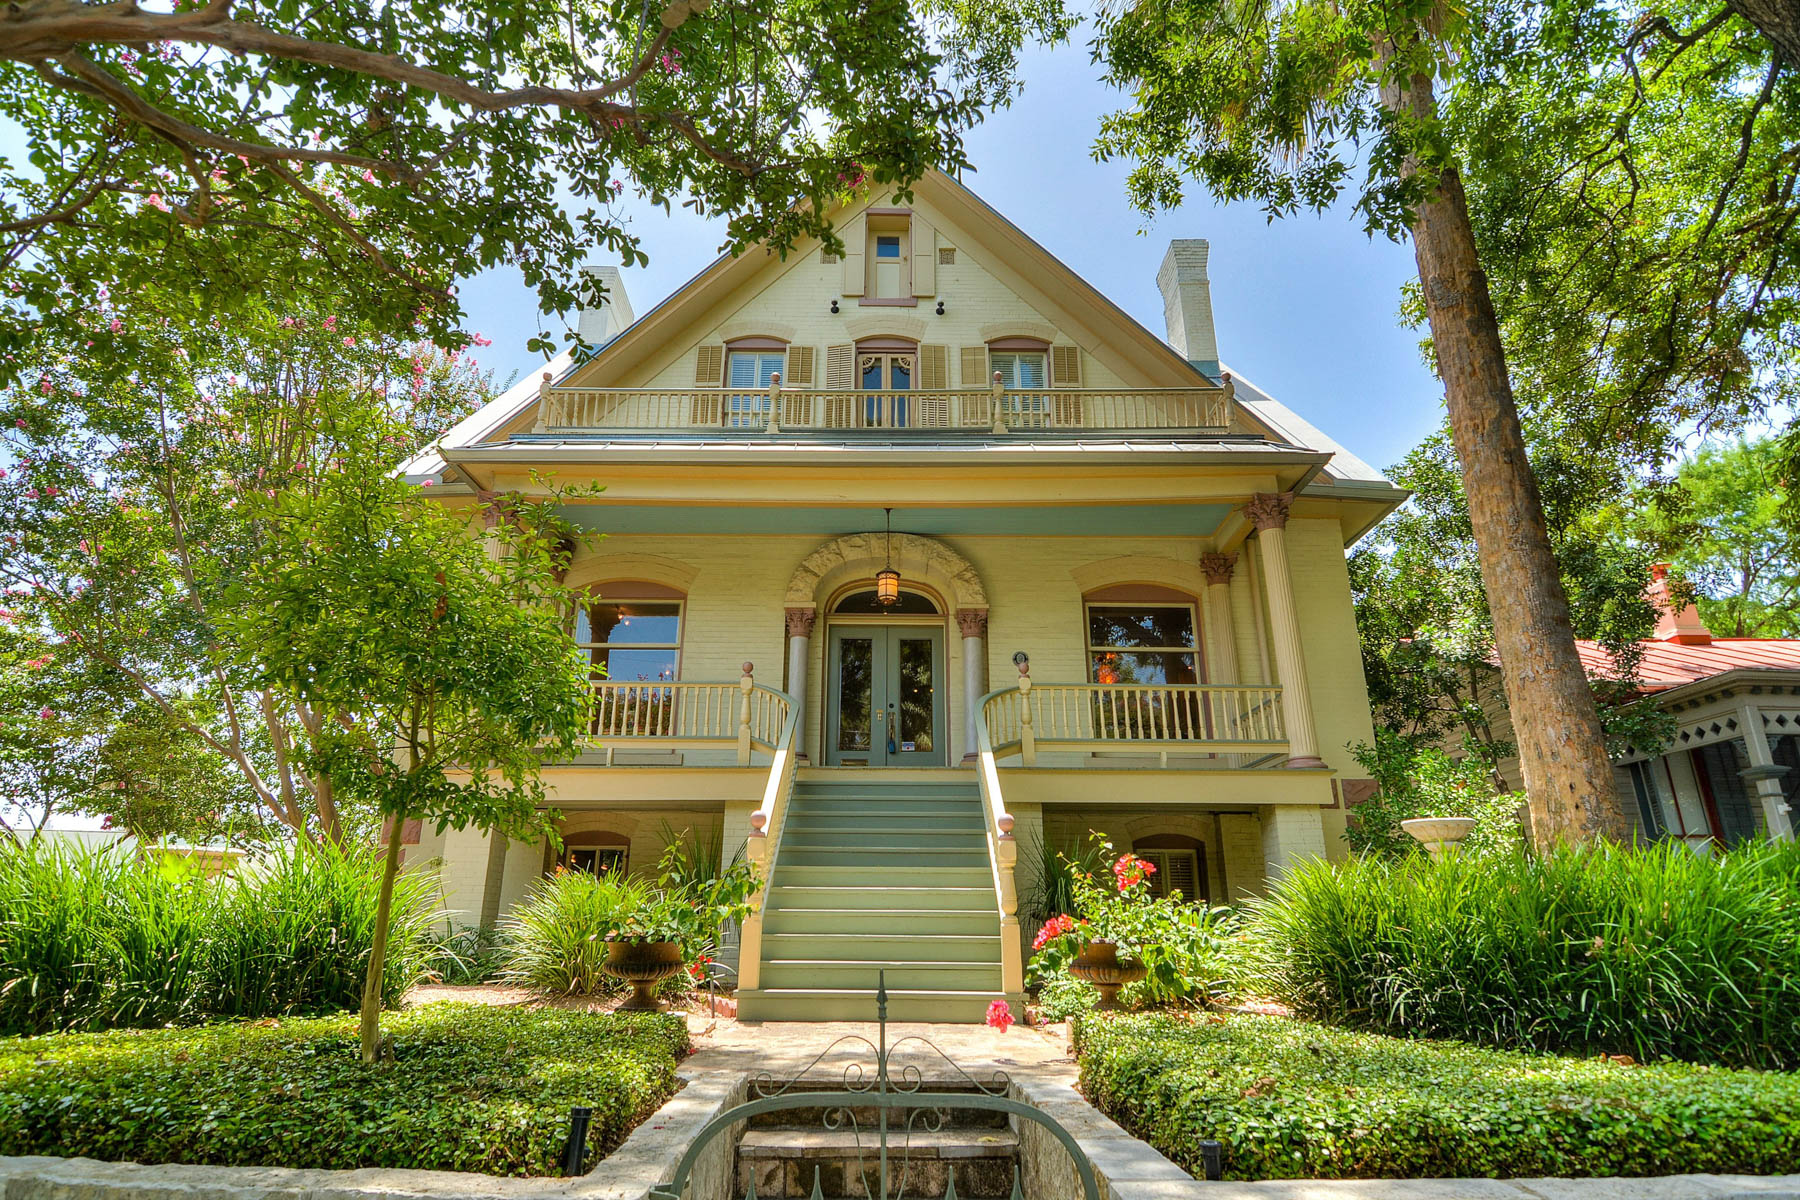 Single Family Home for Sale at Majestic, Yet Wonderfully Urban King William Home 202 Madison St San Antonio, Texas 78204 United States